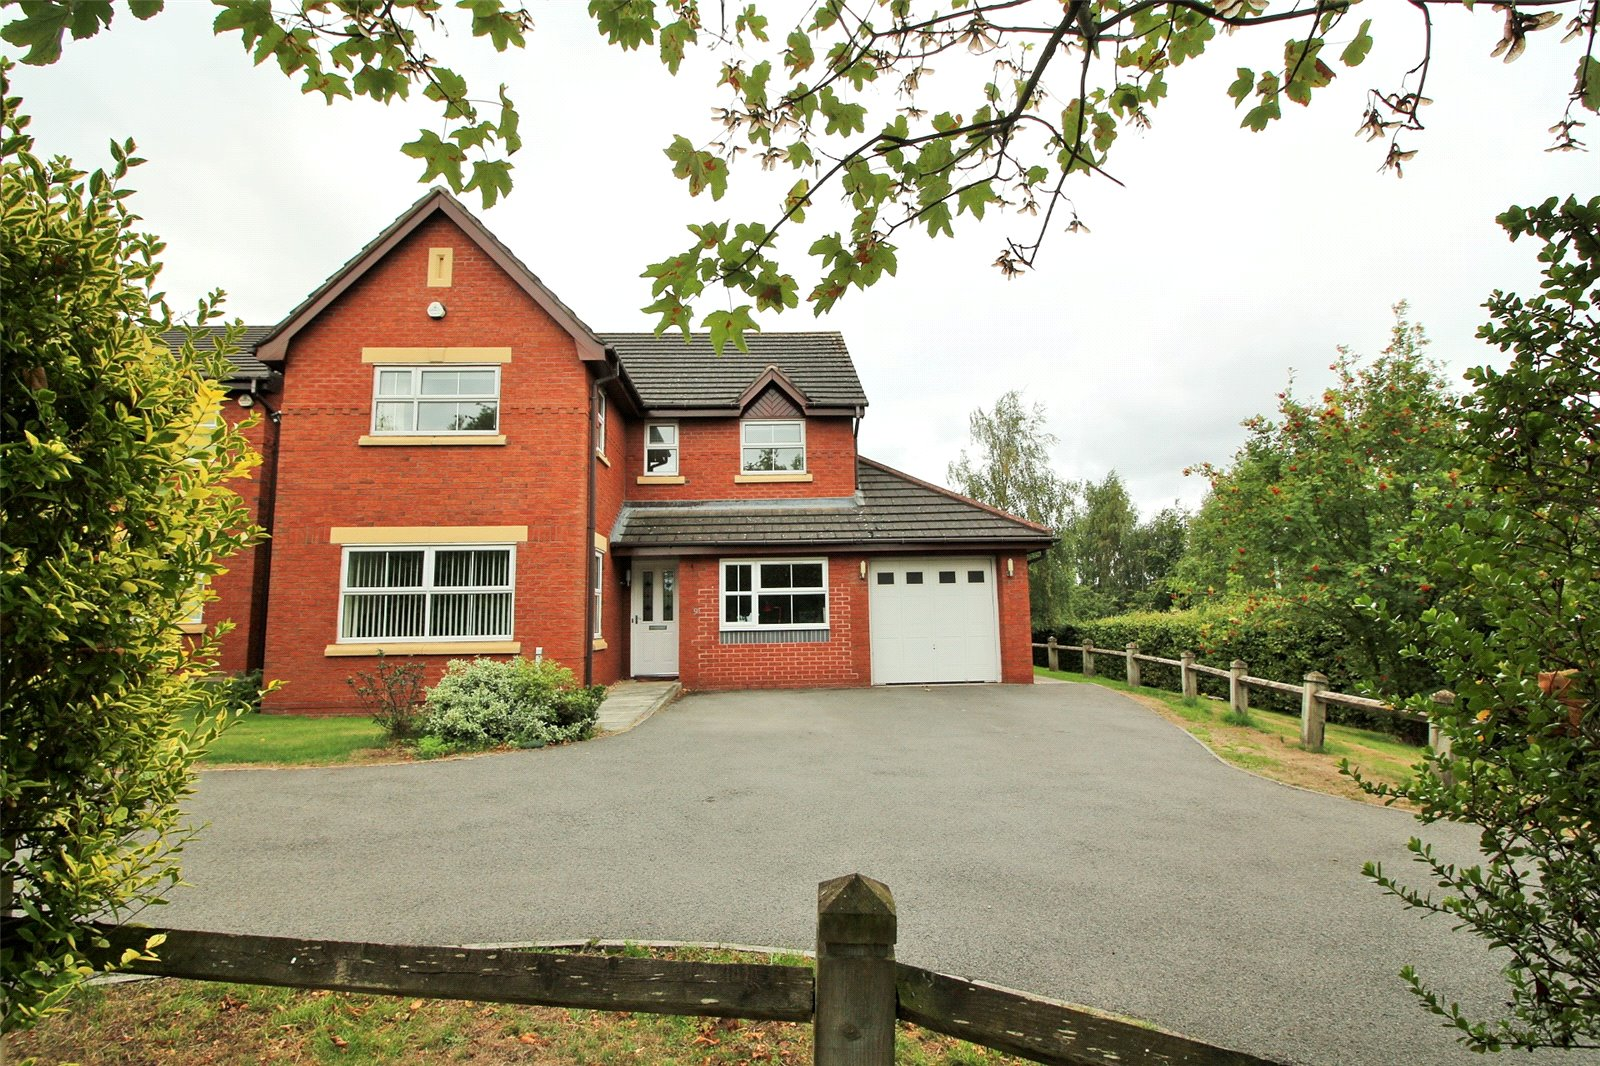 Properties for sale in Wrexham: Five of the best